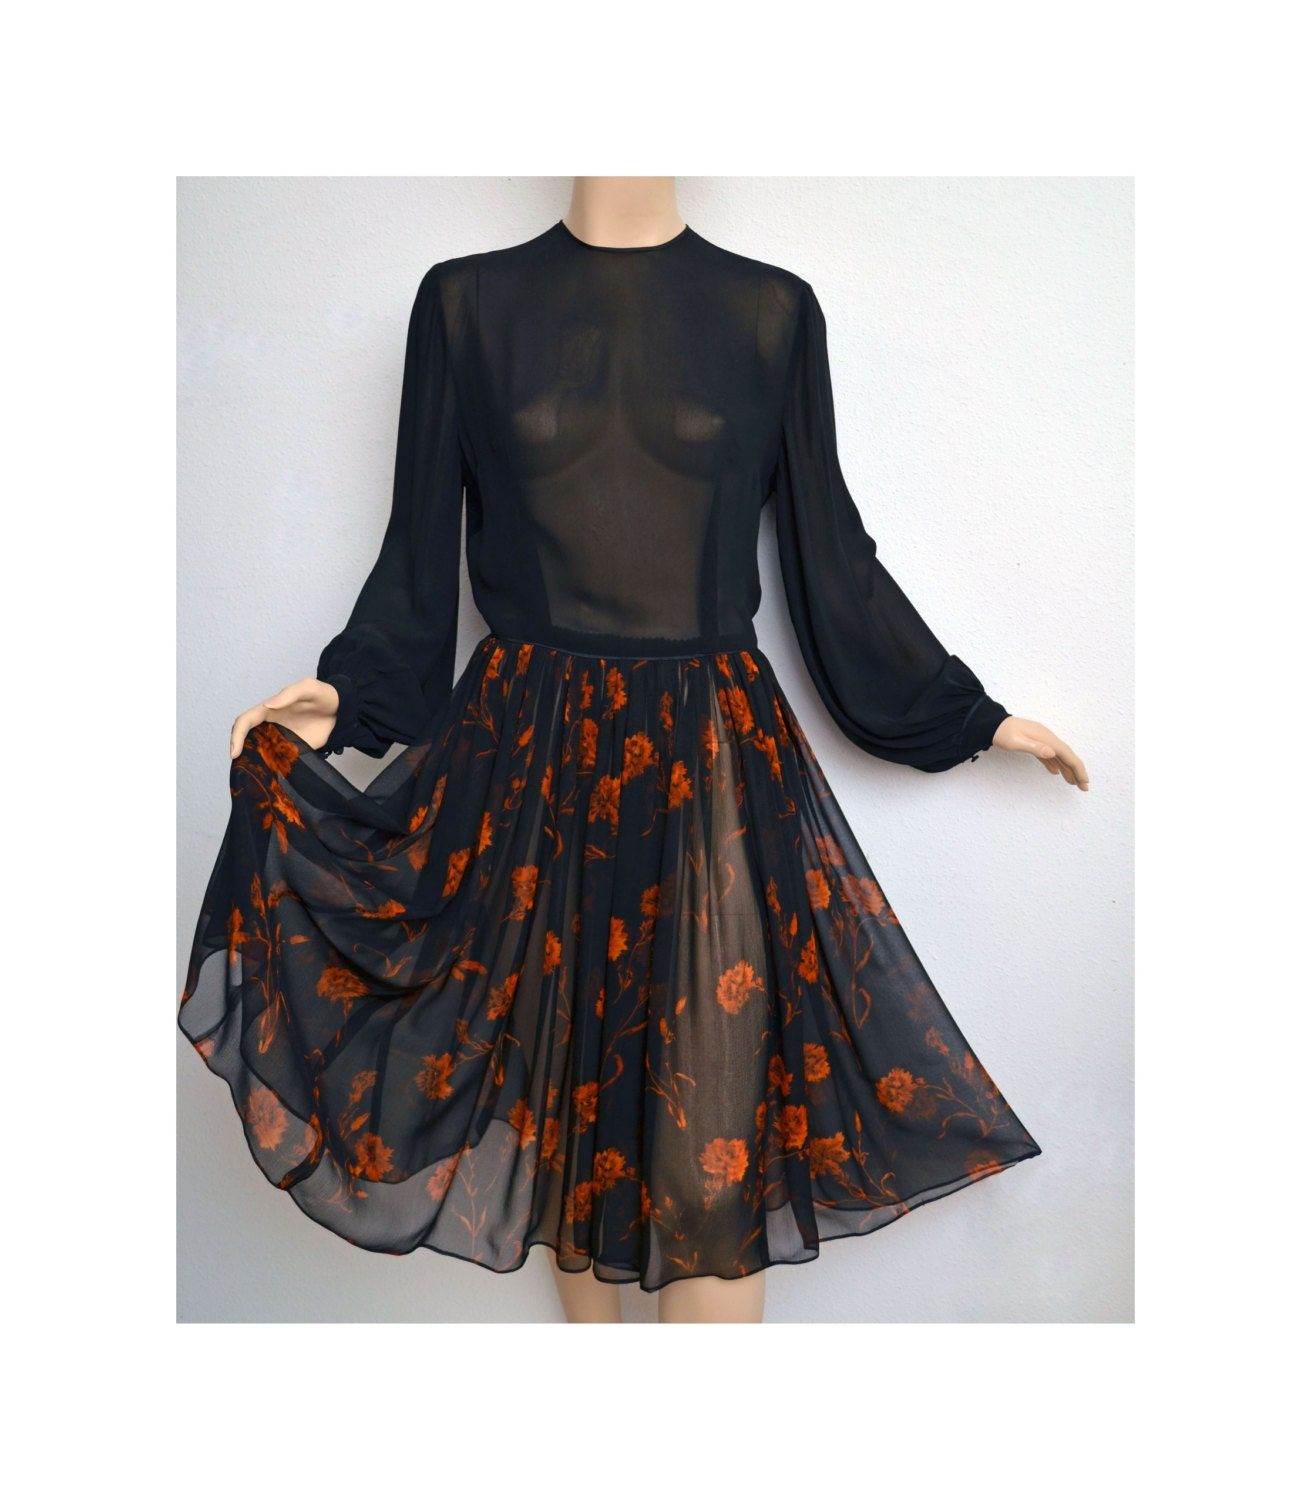 Vintage Chiffon Dress // Black and Orange Sheer Silk Chiffon Dress Bishop Sleeves Tiny Buttons Down Back - VintageDevotion